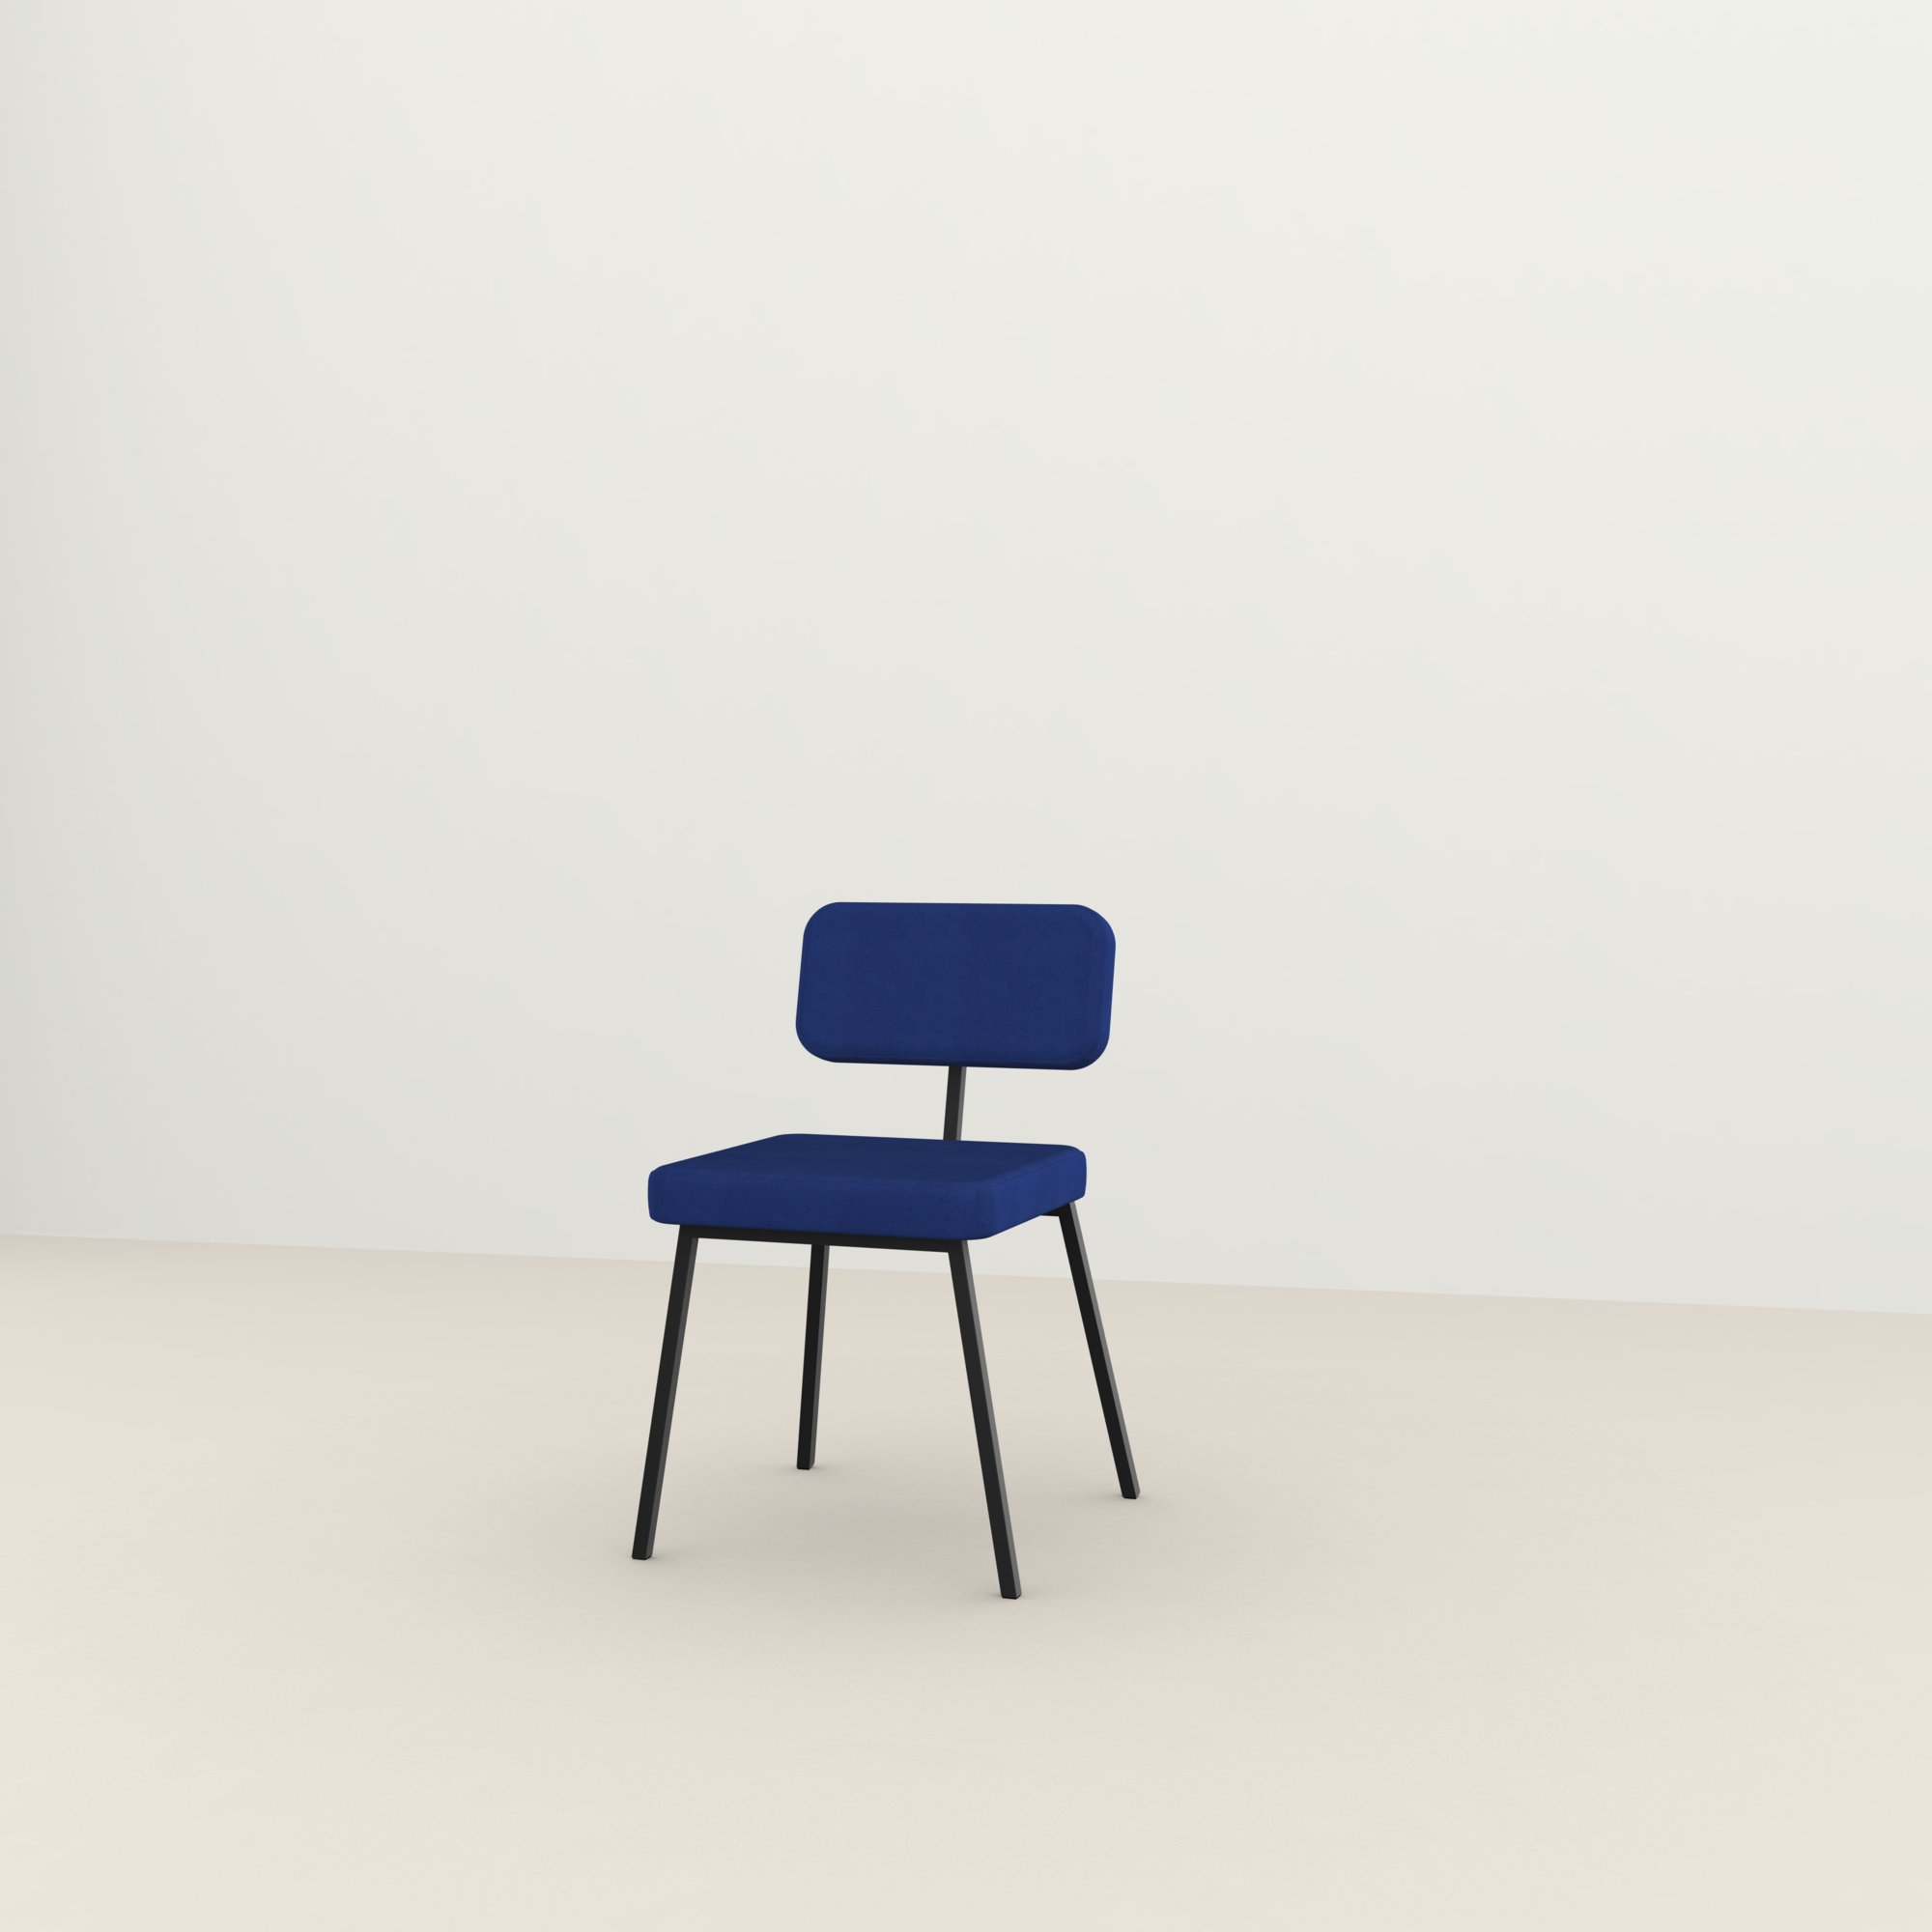 Design eetkamerstoel | Ode Chair without armrest tonus4 210 | Studio HENK |